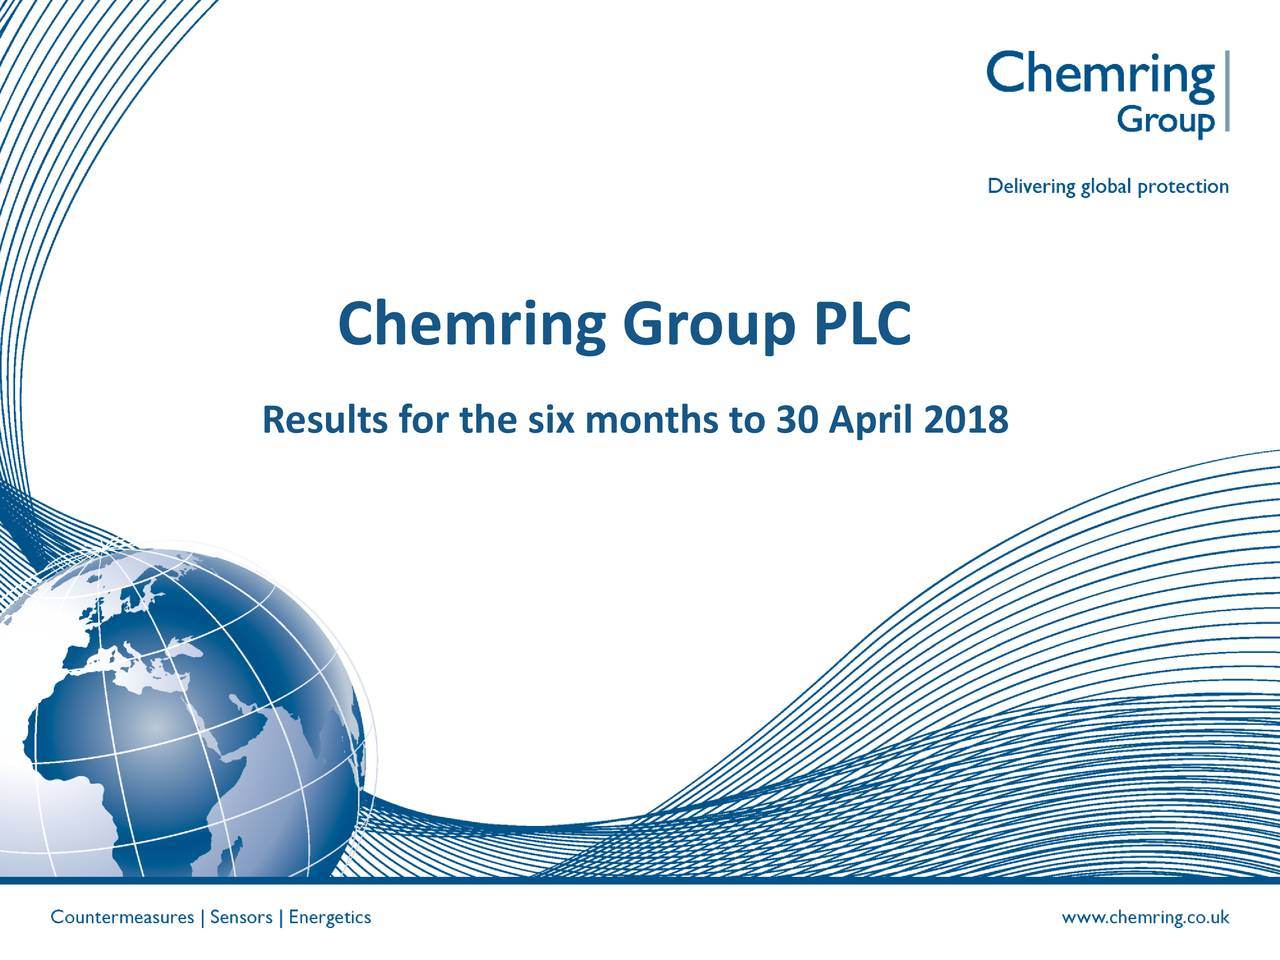 Results for the six months to 30 April 2018